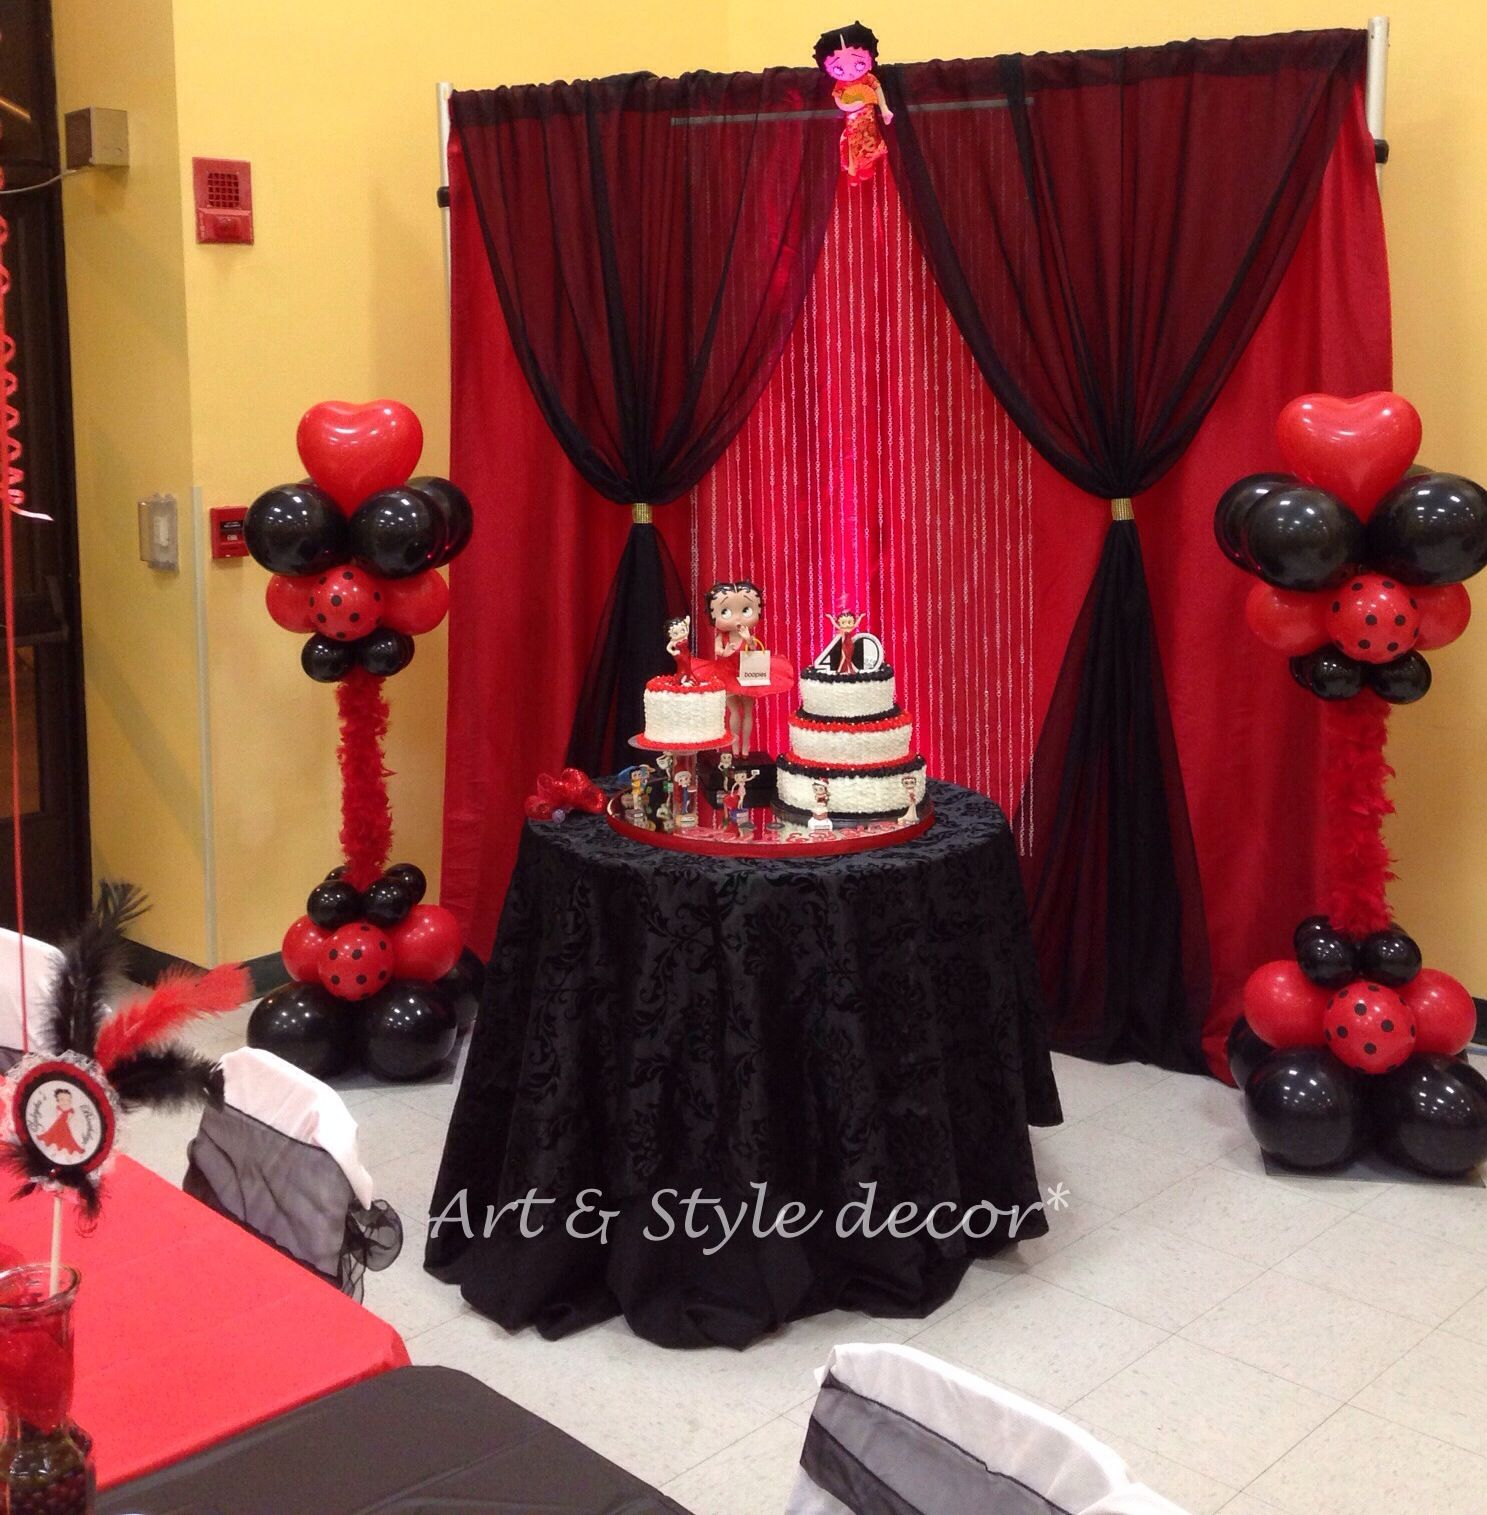 Betty Boop Cake Area Decor Themed Party. #